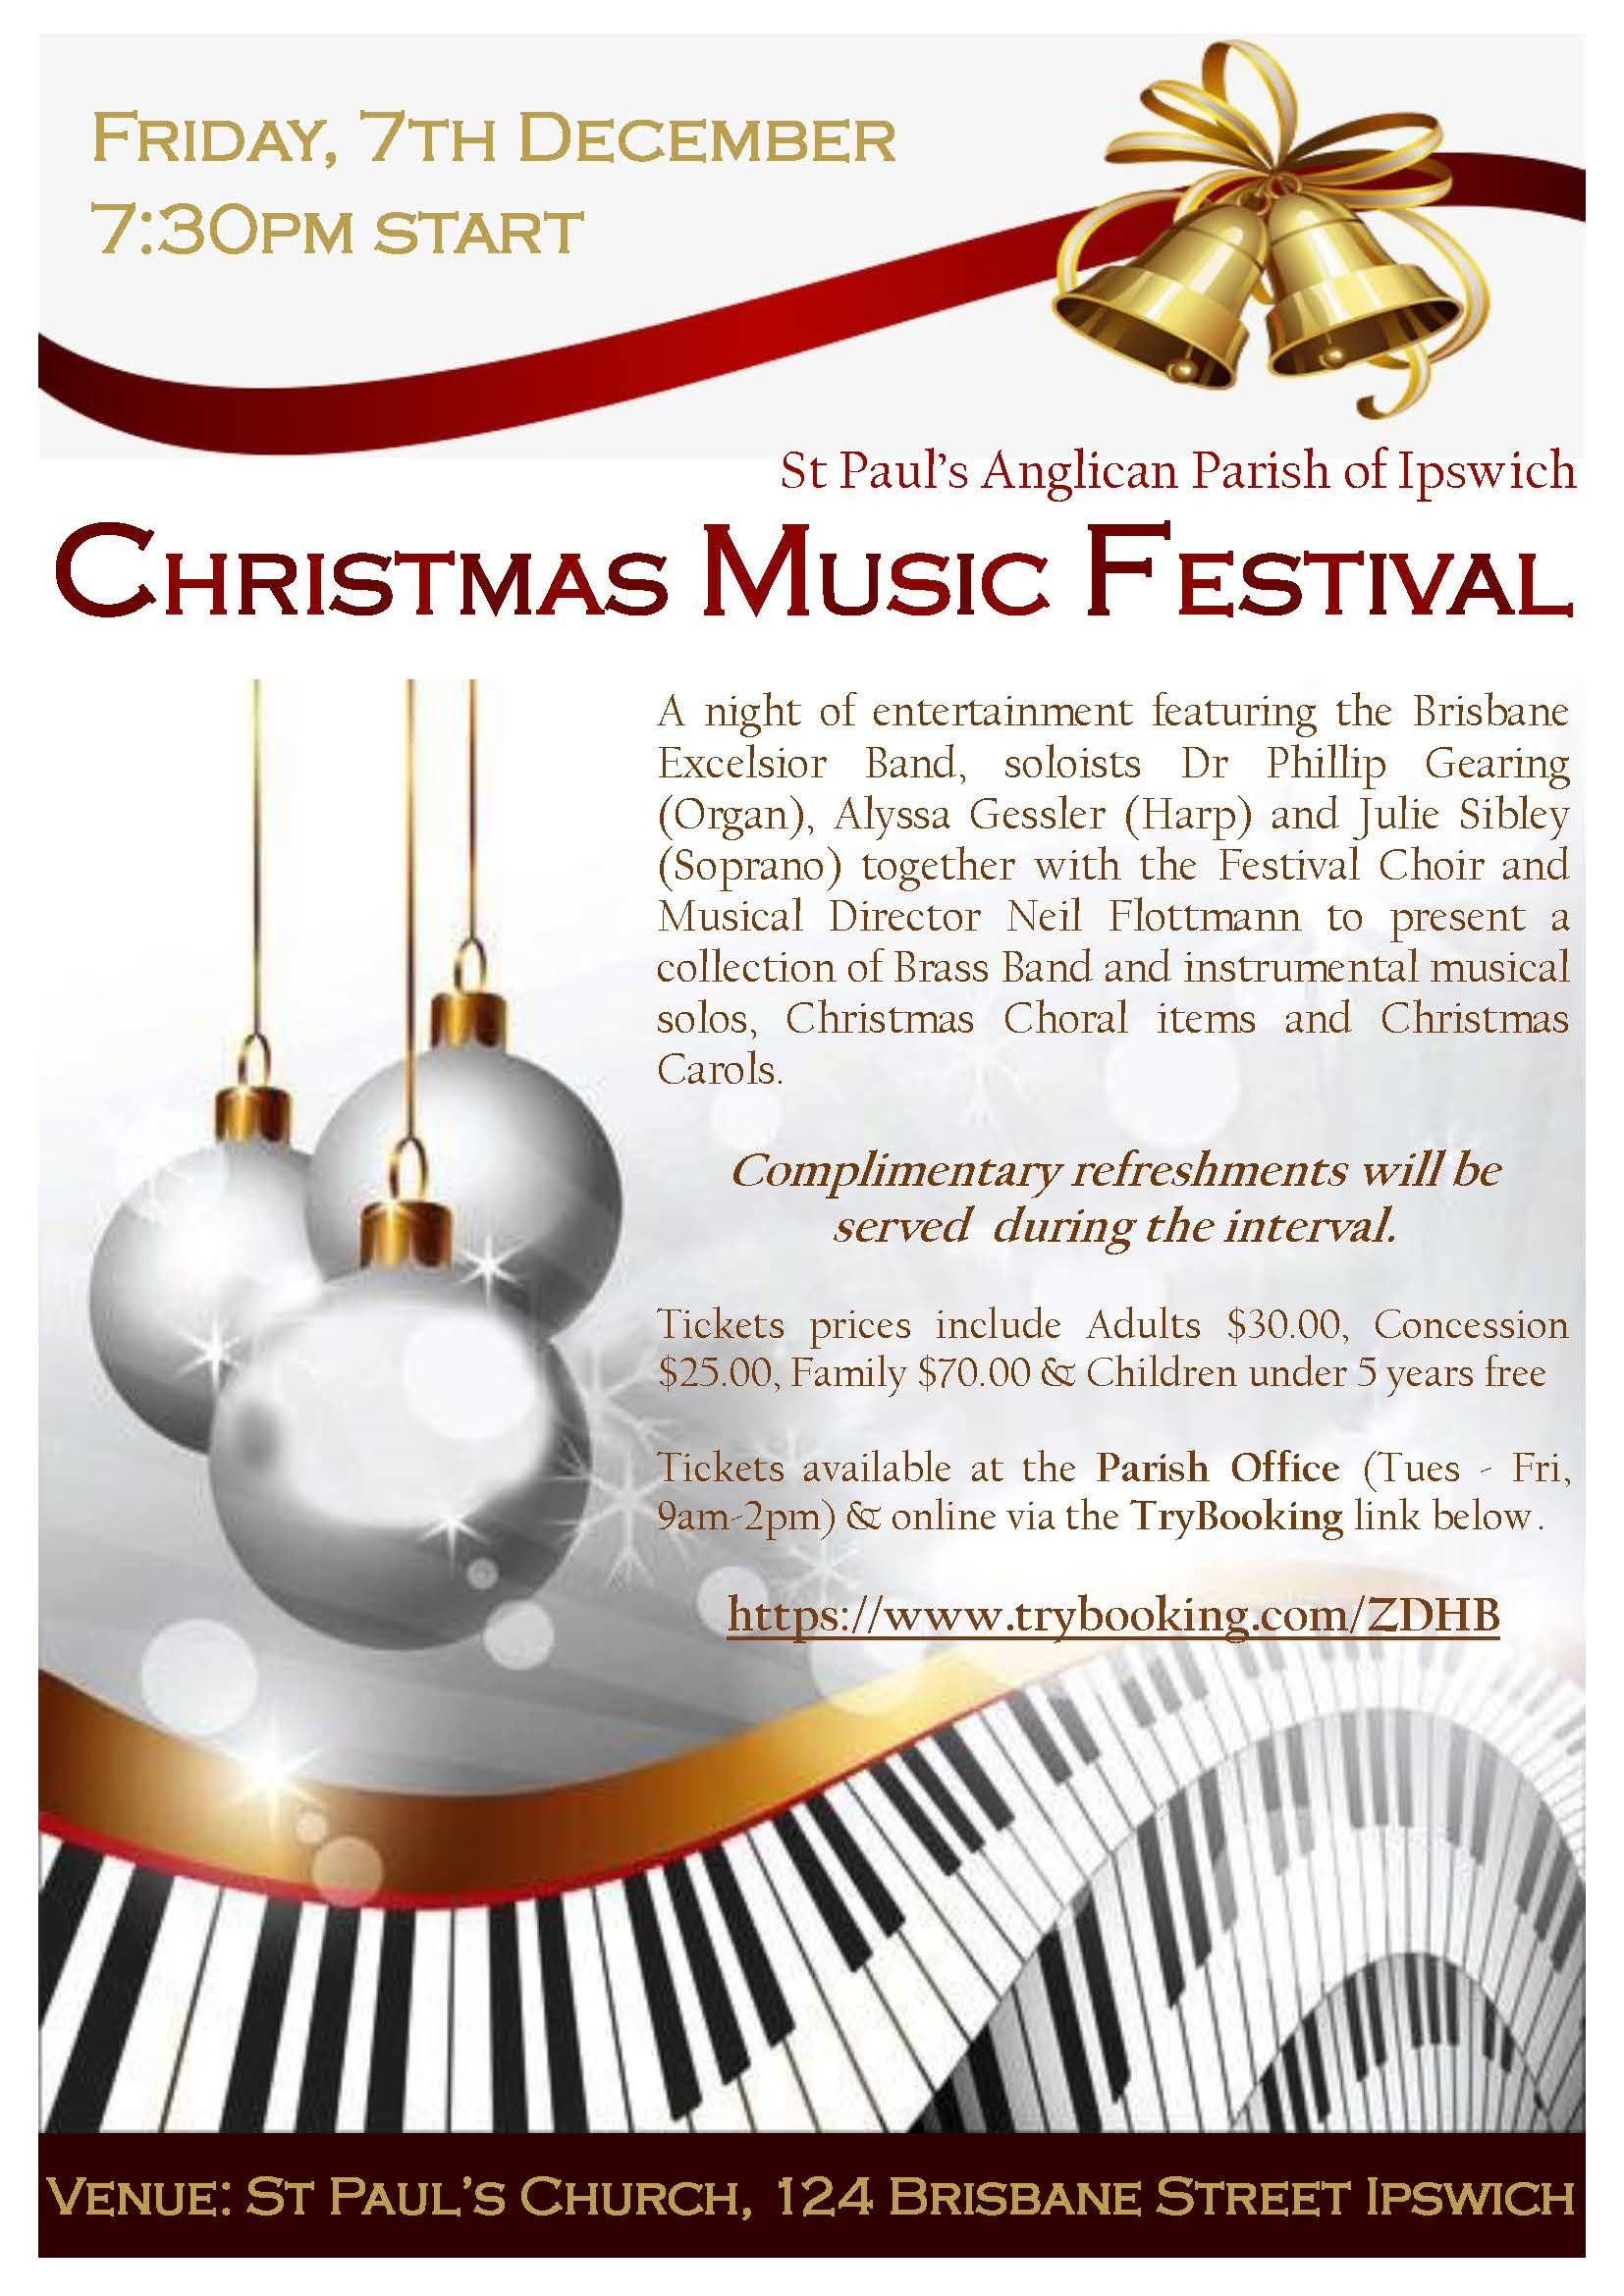 St Paul's Christmas Music Festival